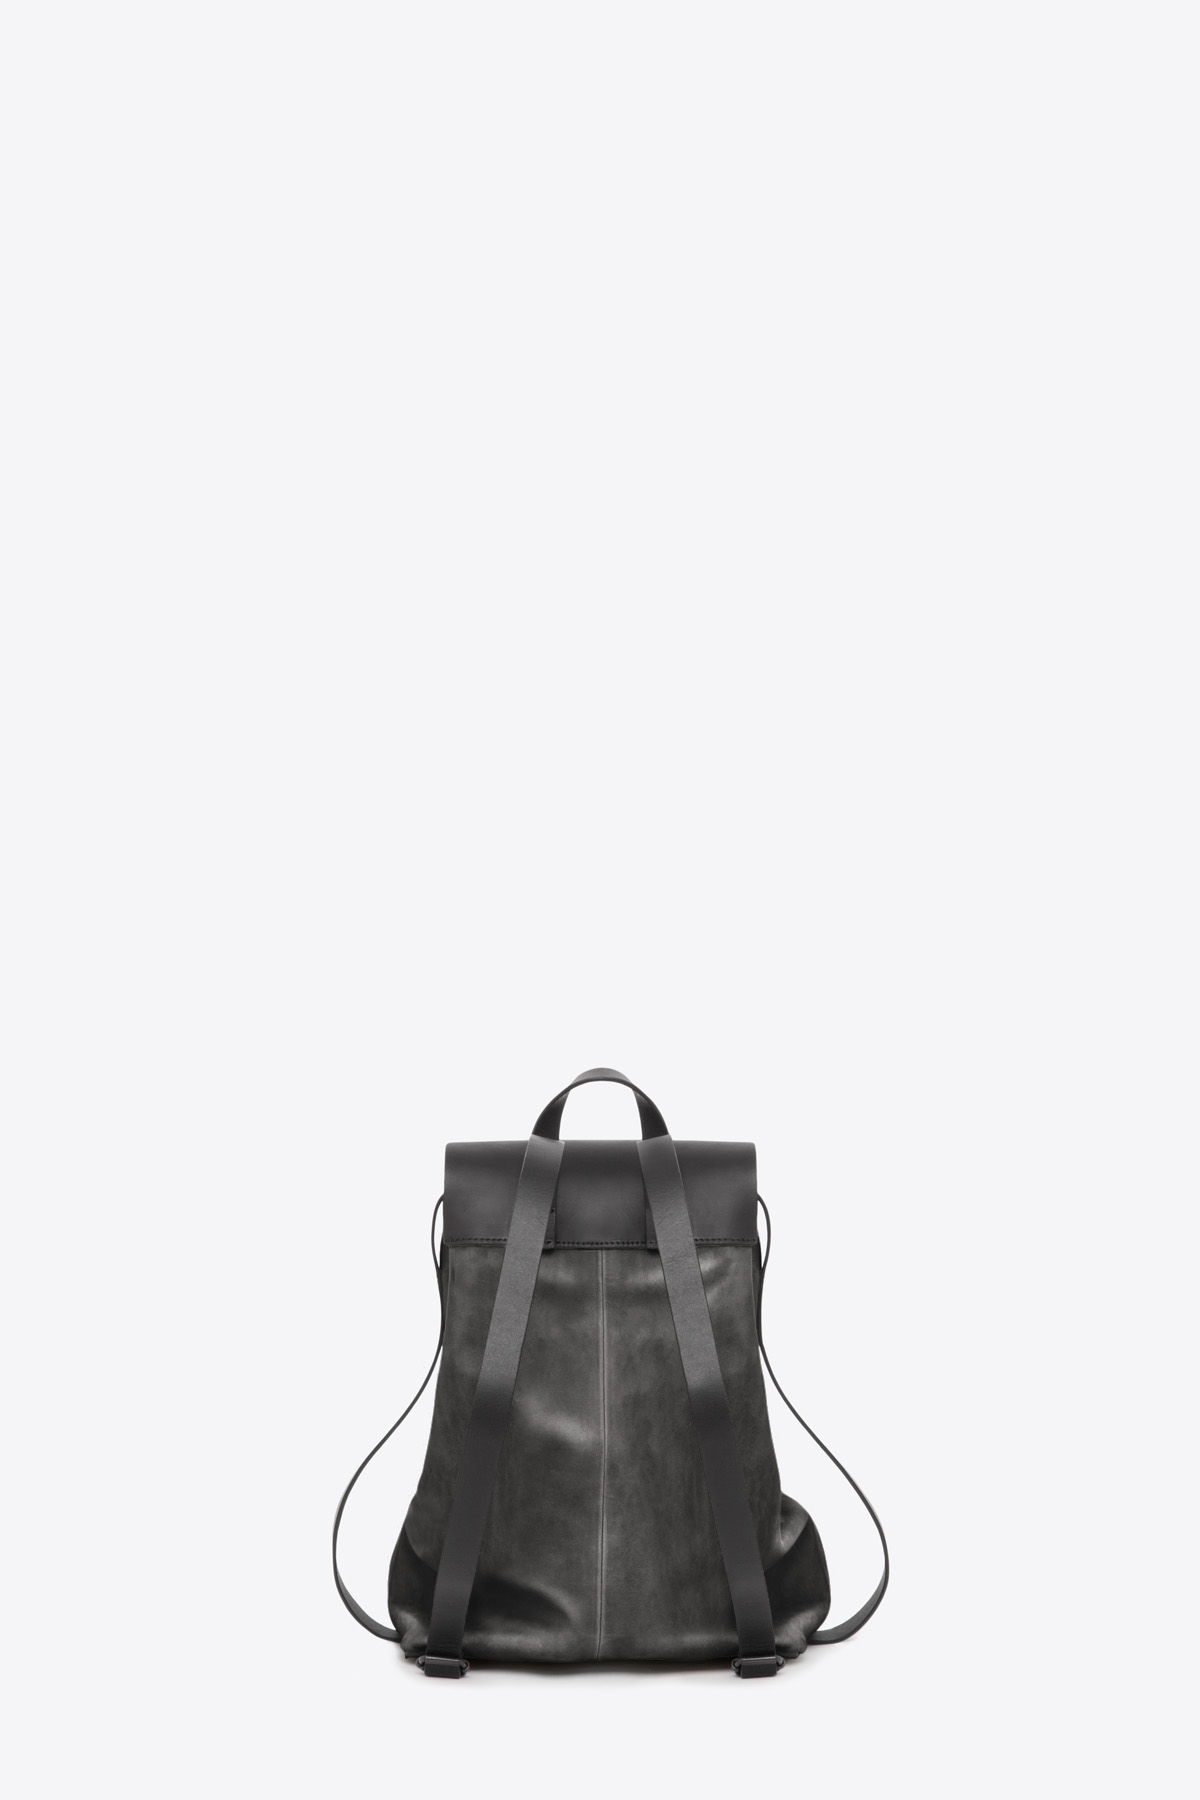 dclr009-b-backpack-a2-shadowgray-back